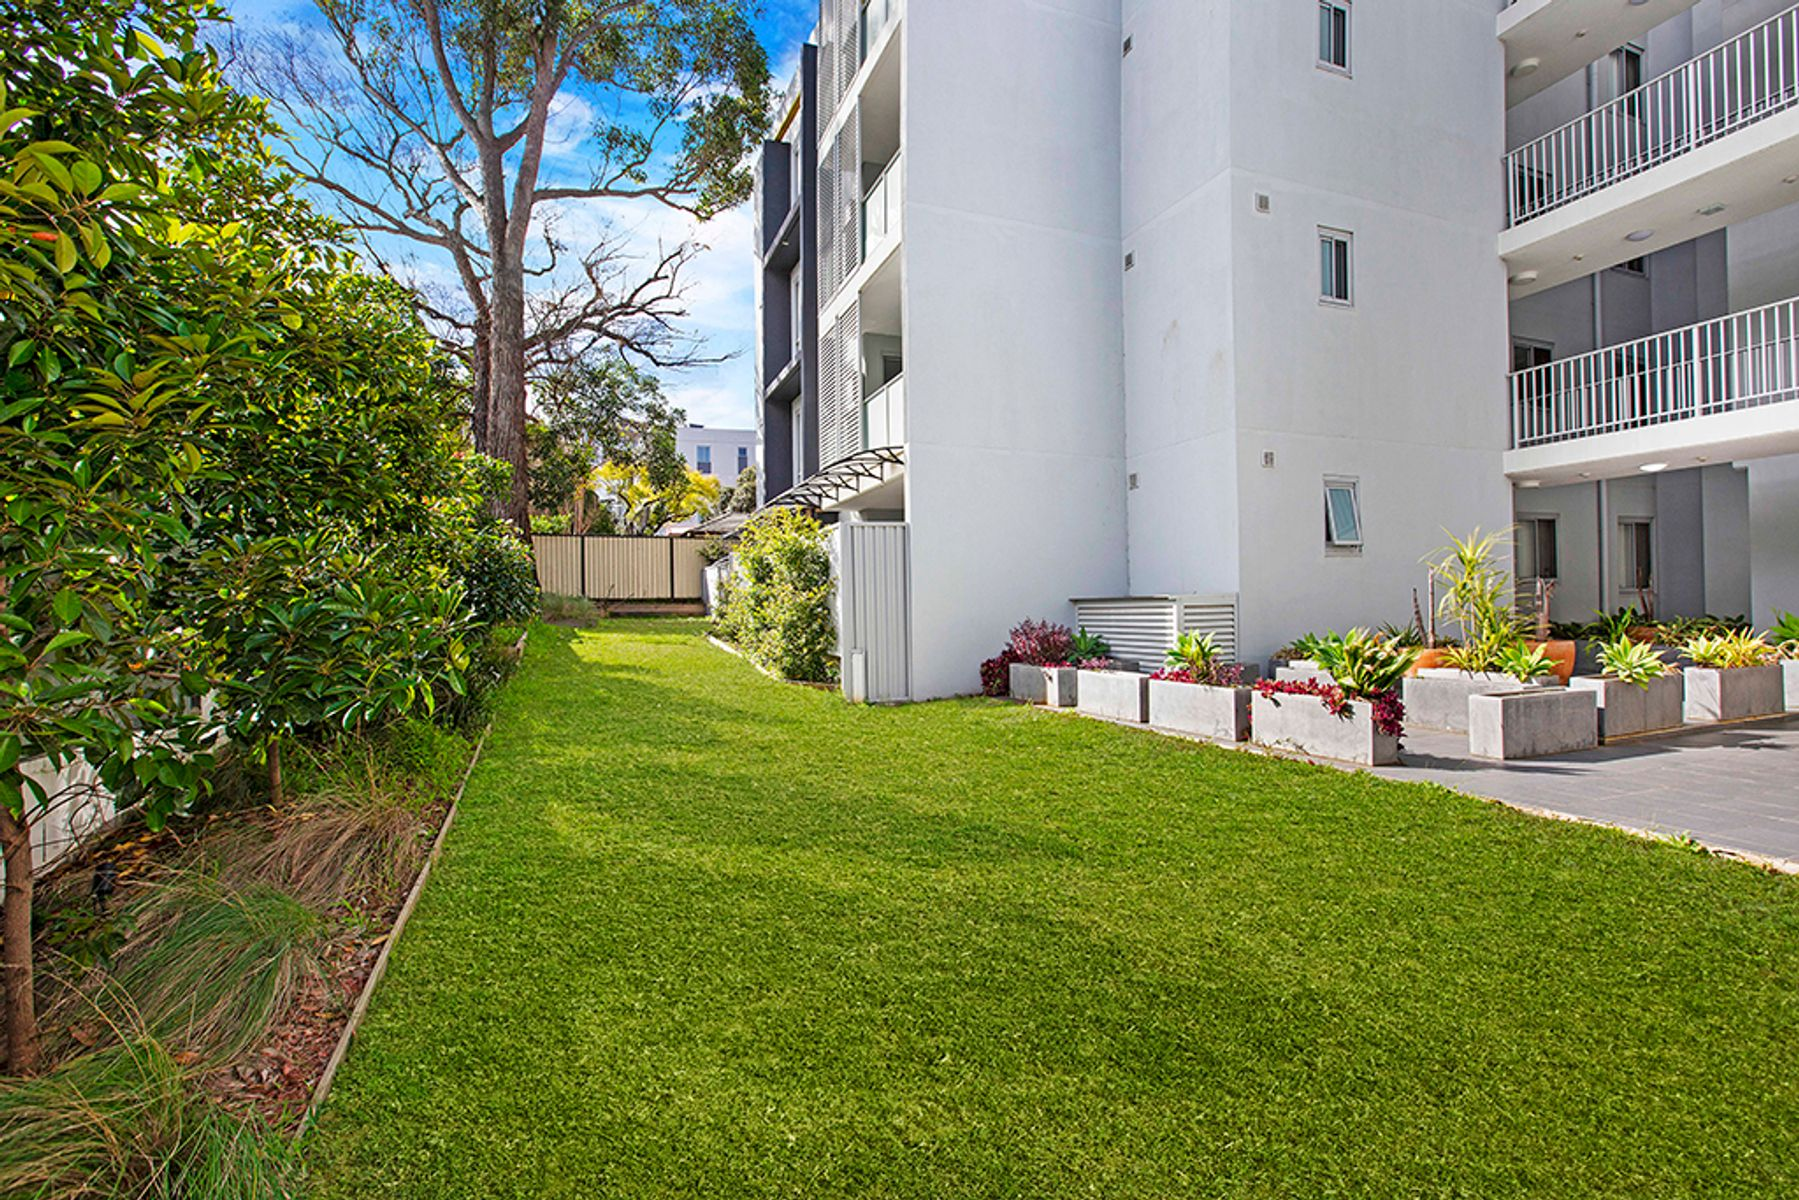 23/14-18 Peggy Street, Mays Hill, NSW 2145